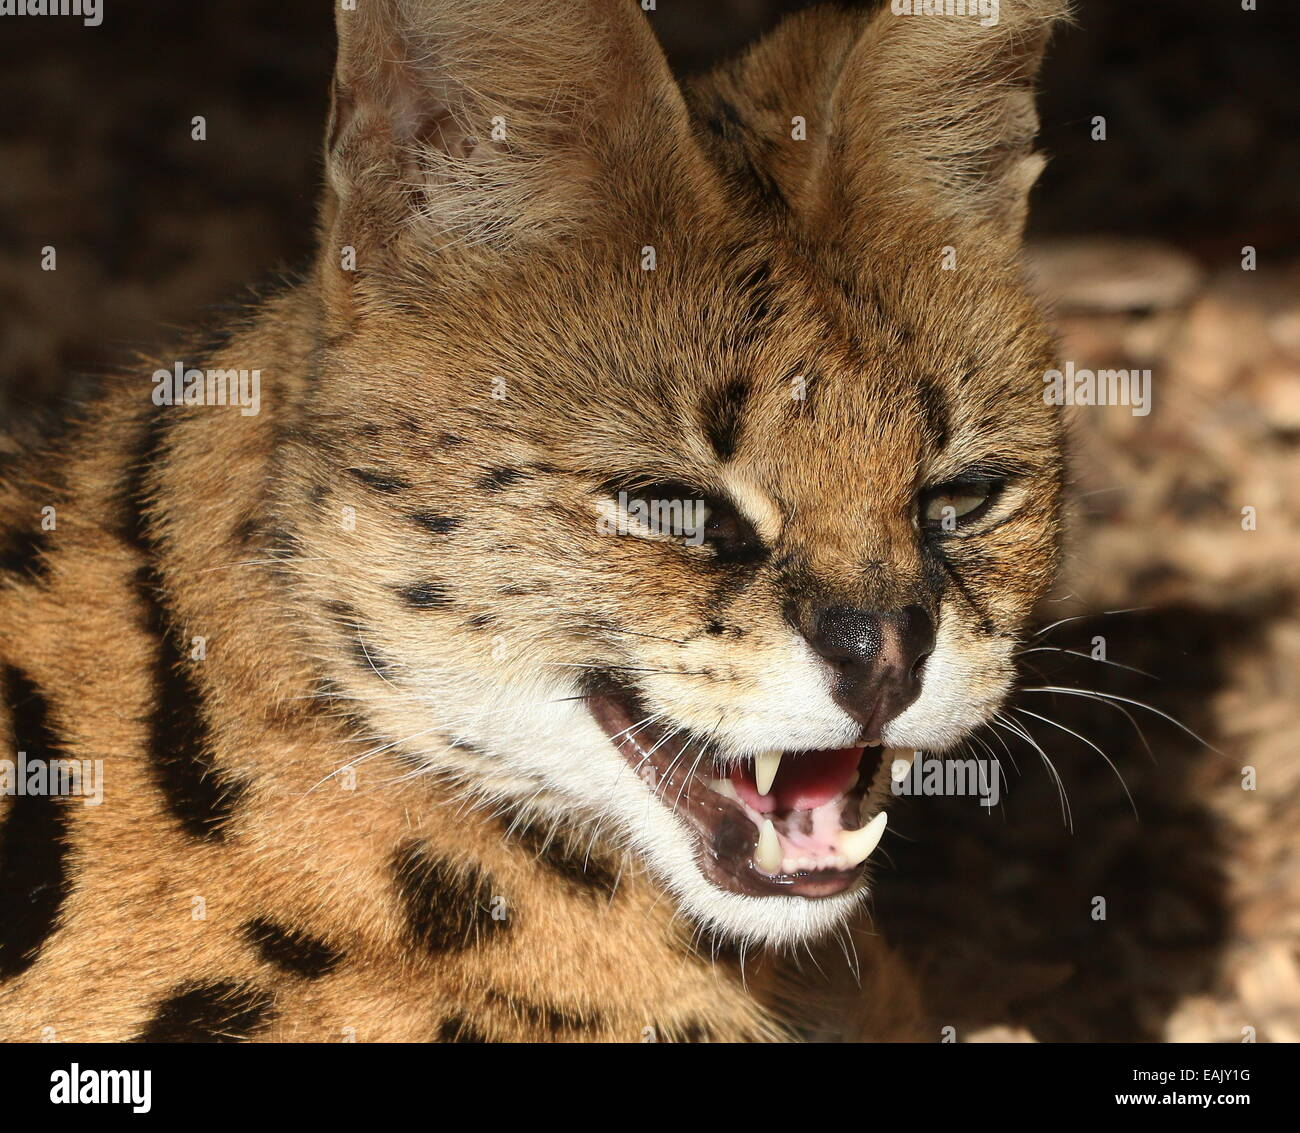 Close-up of the head of the African Serval (Leptailurus serval) snarling, teeth showing - Stock Image